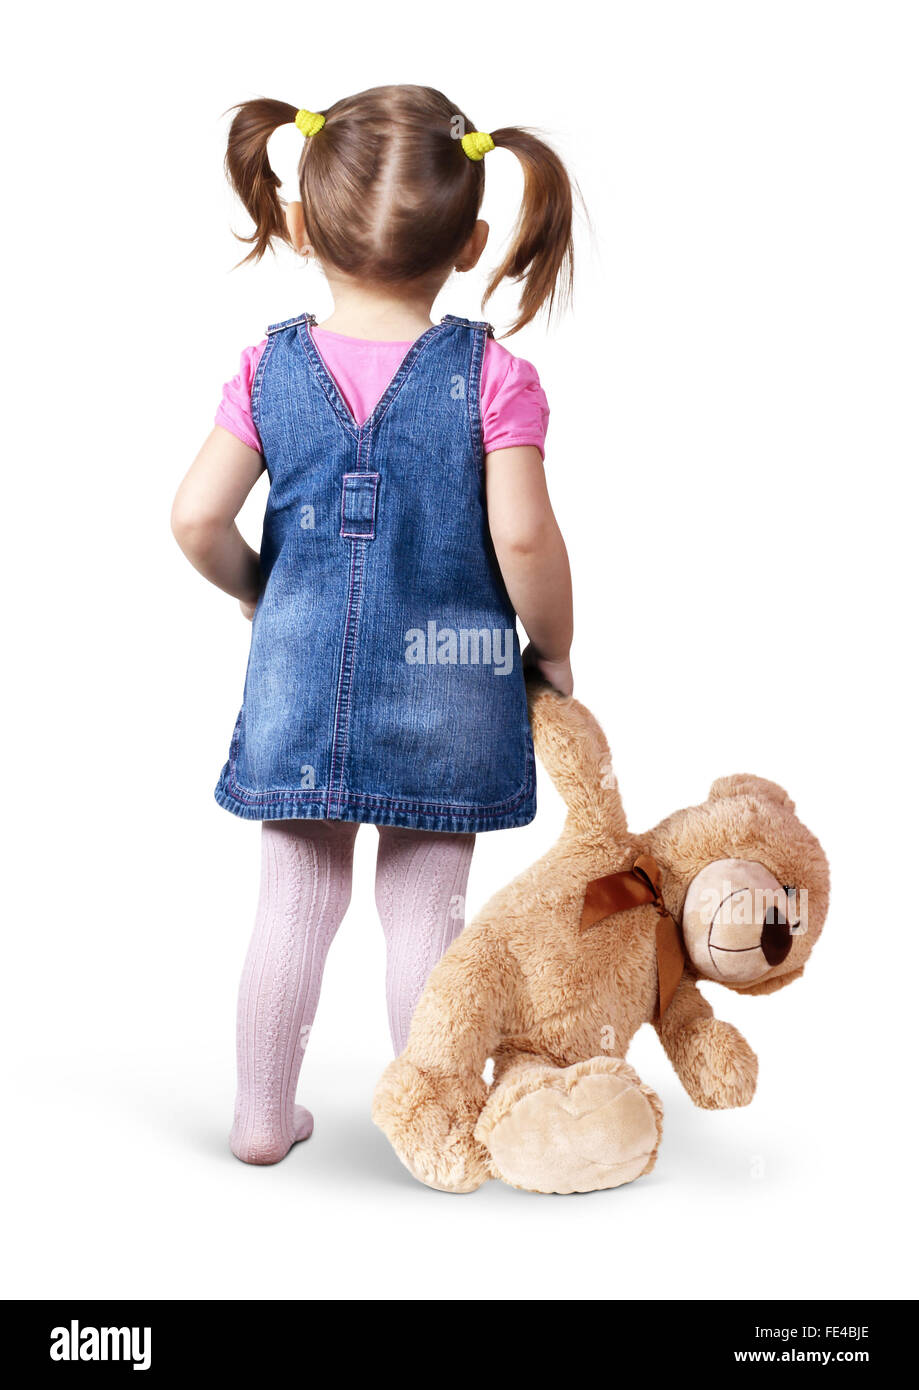 Little child girl with toy bear on white, back view - Stock Image